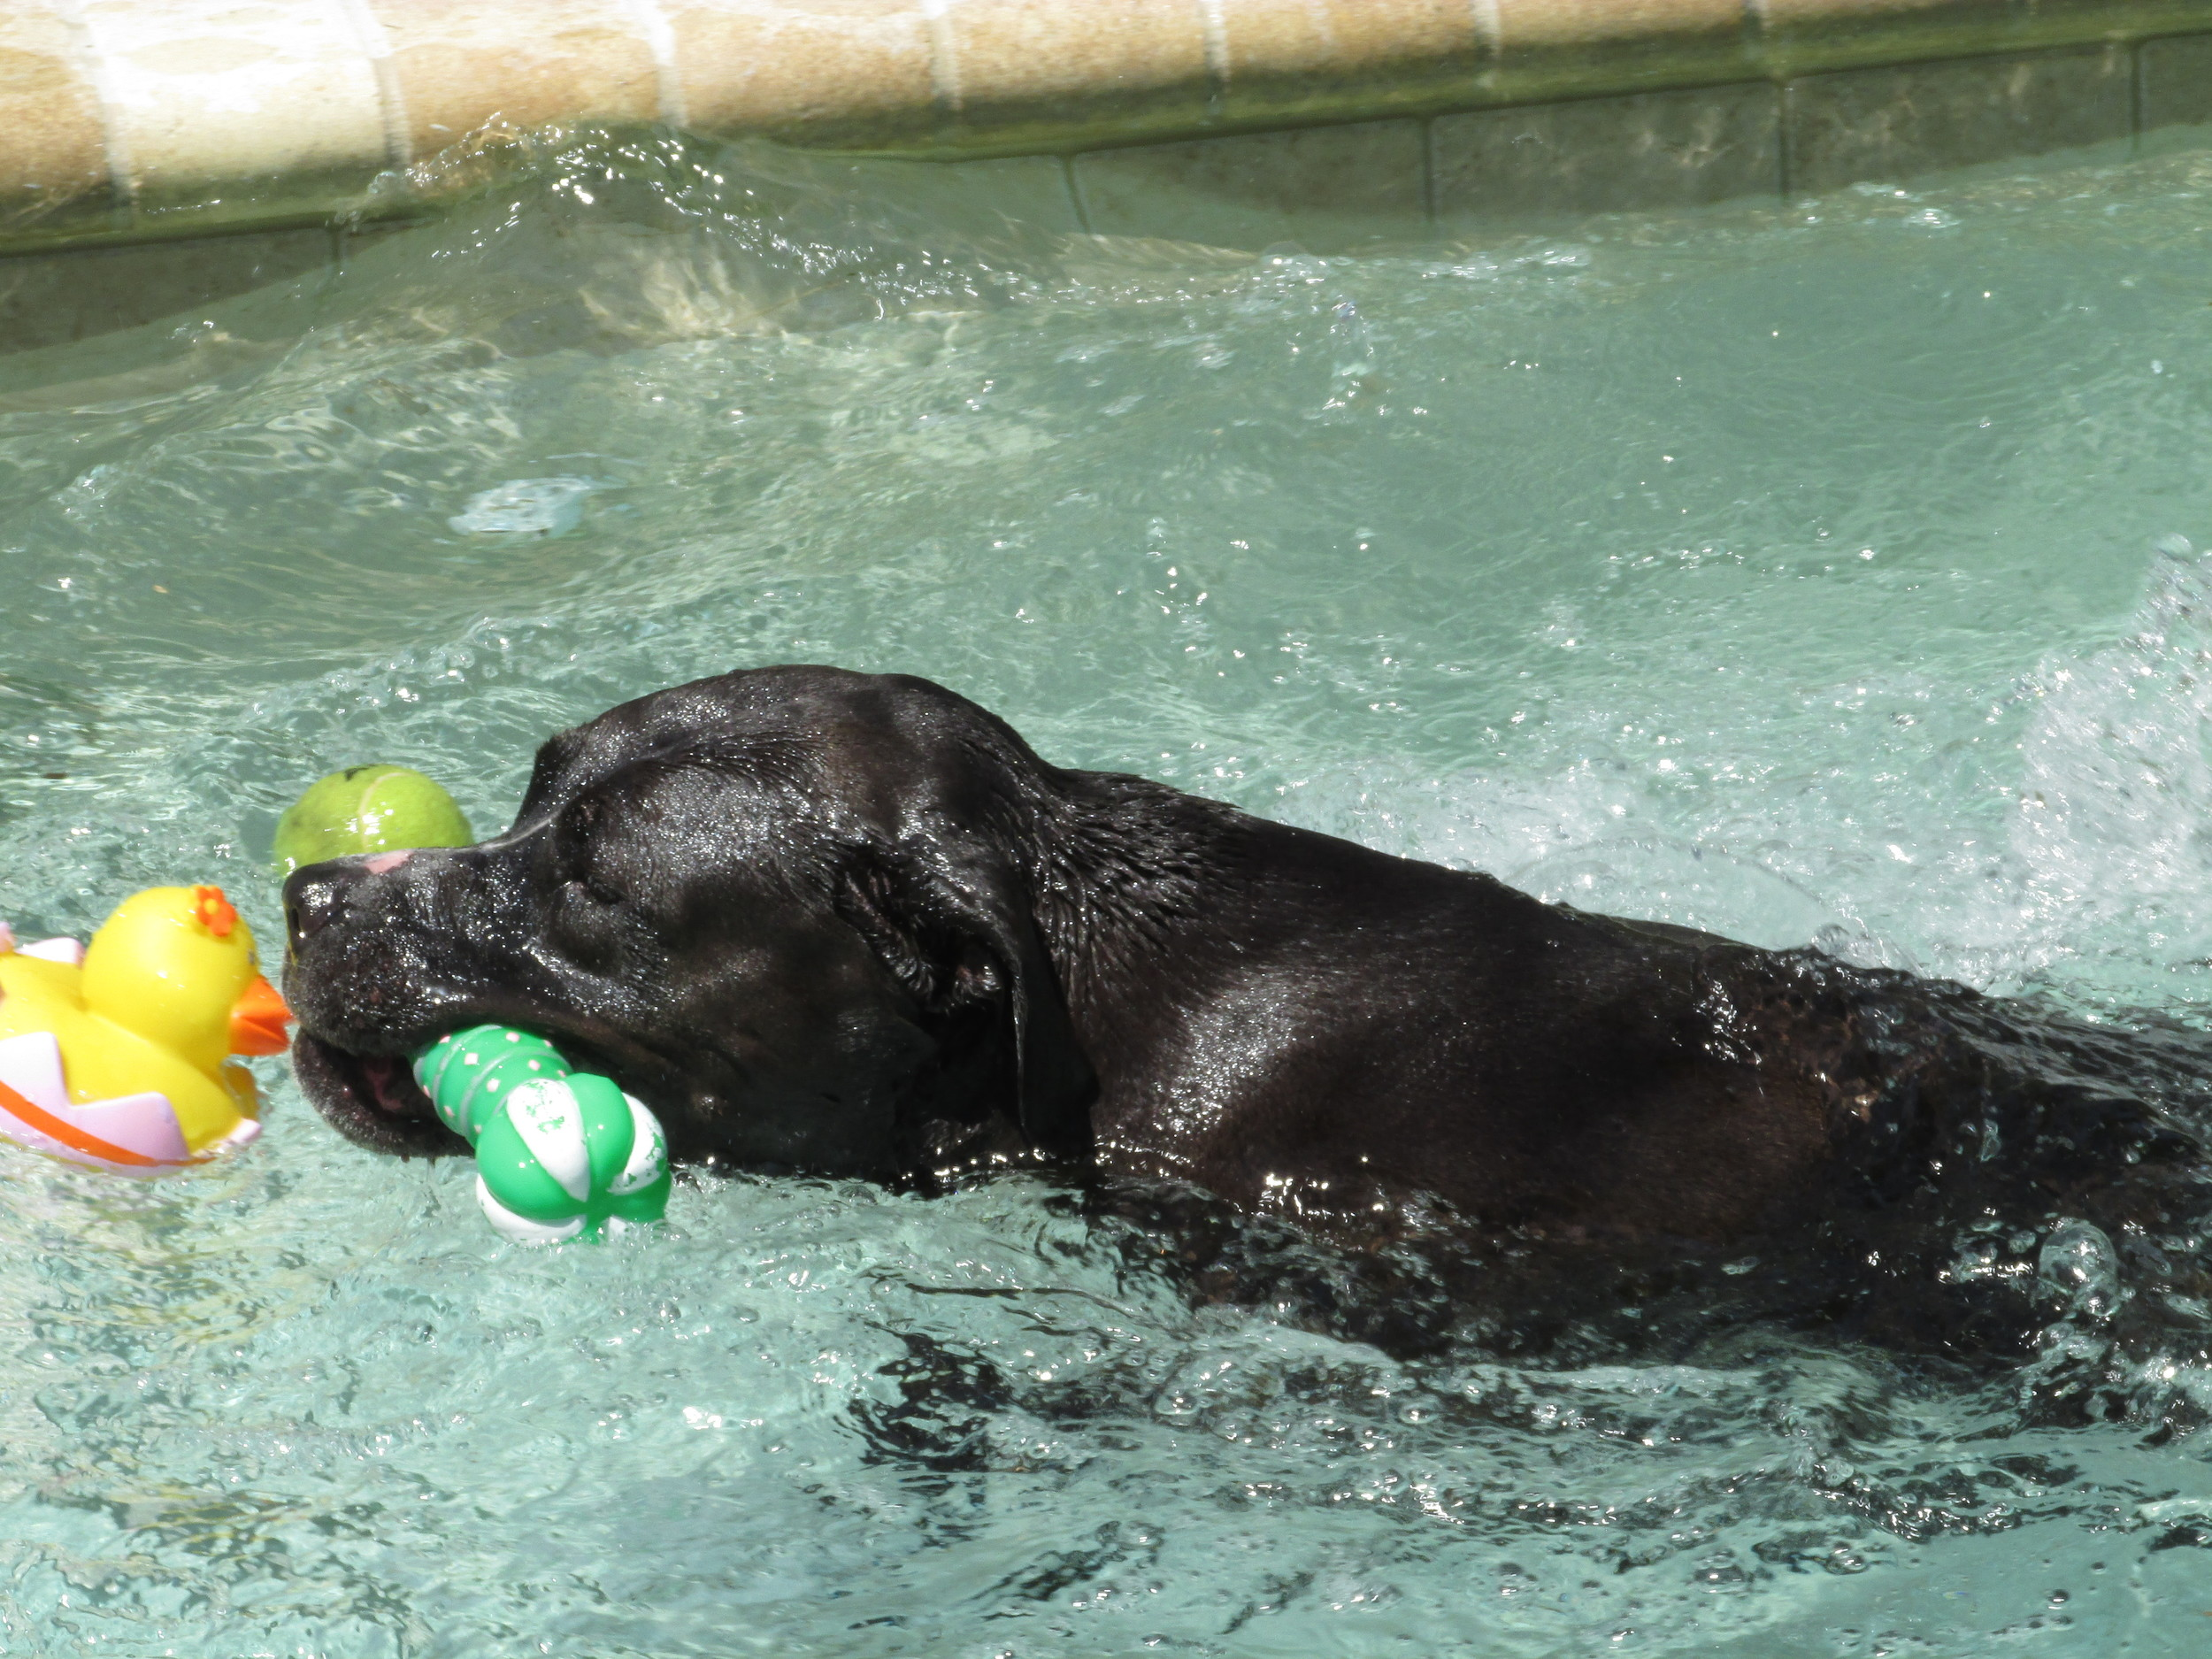 The swimming pool at Dogs & Cats Forever